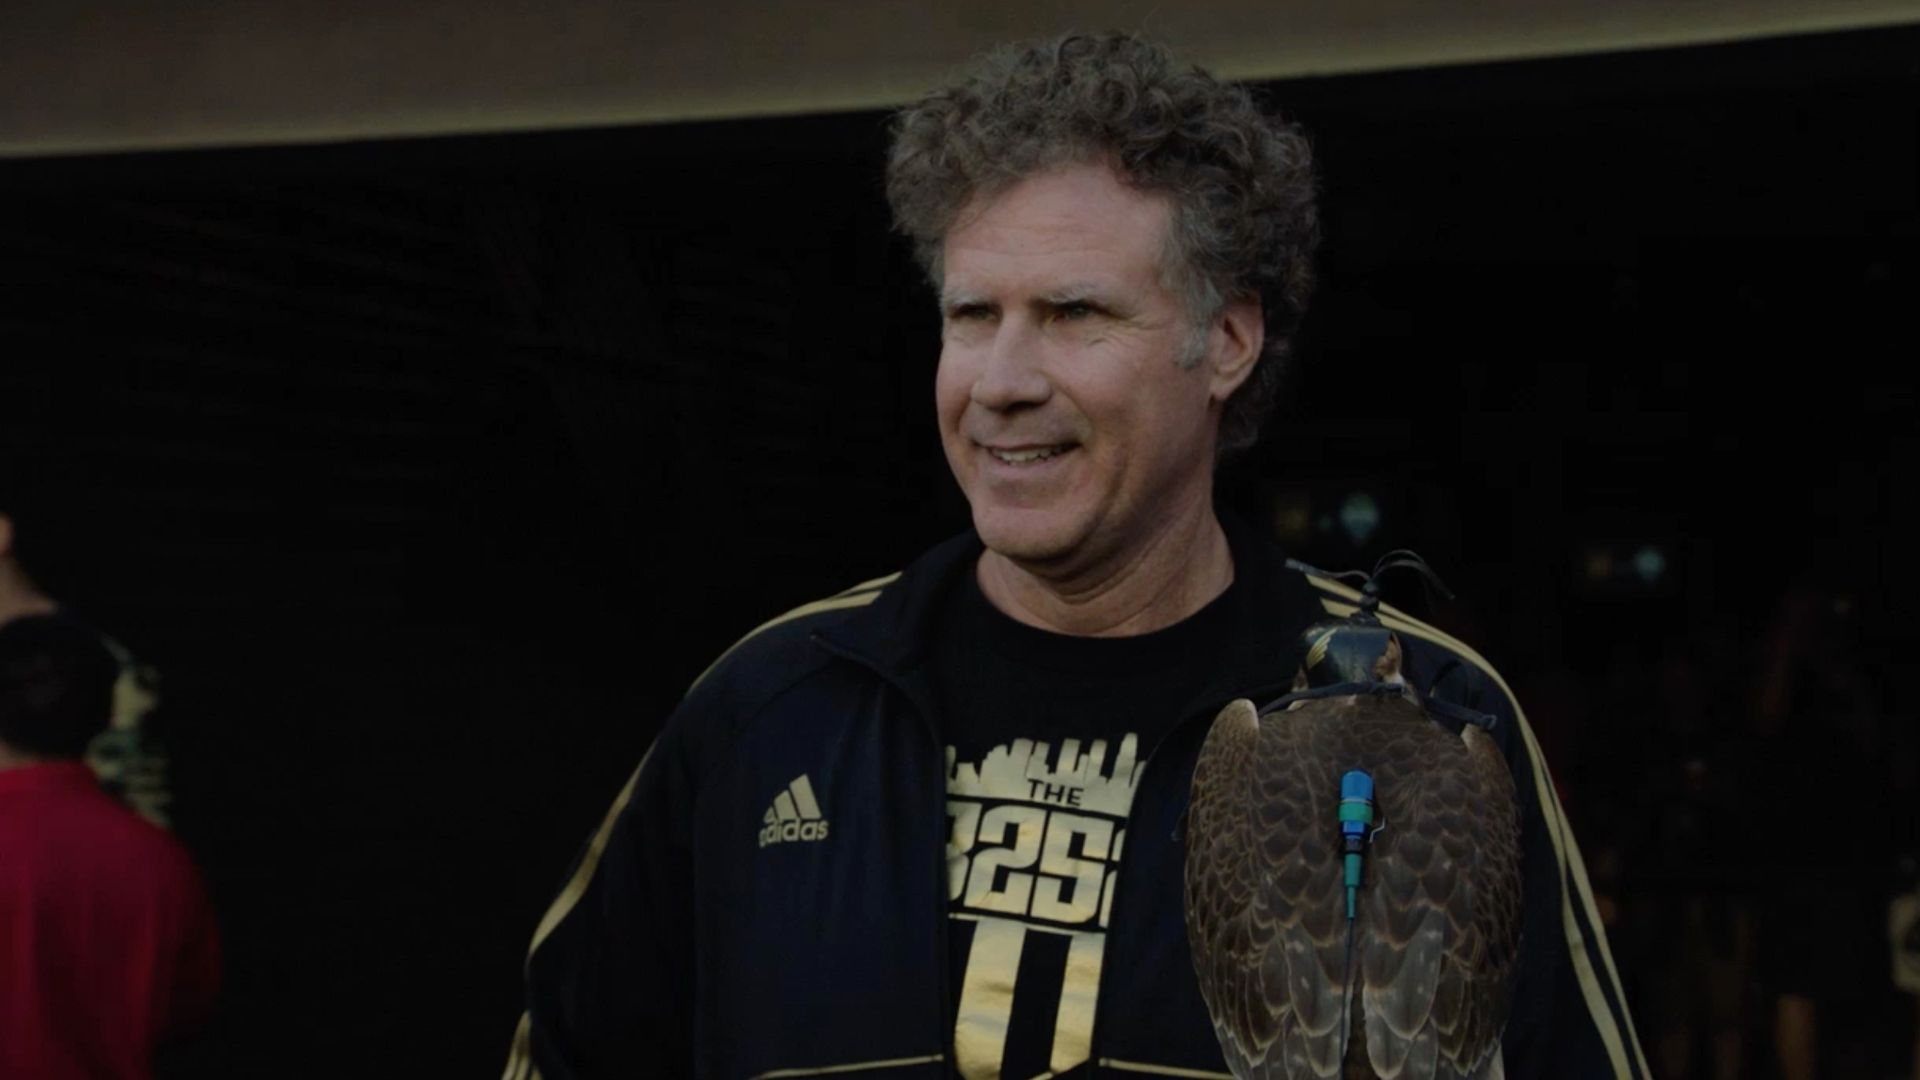 Foudy's Finds: Mia Hamm, Will Ferrell among owners of LAFC